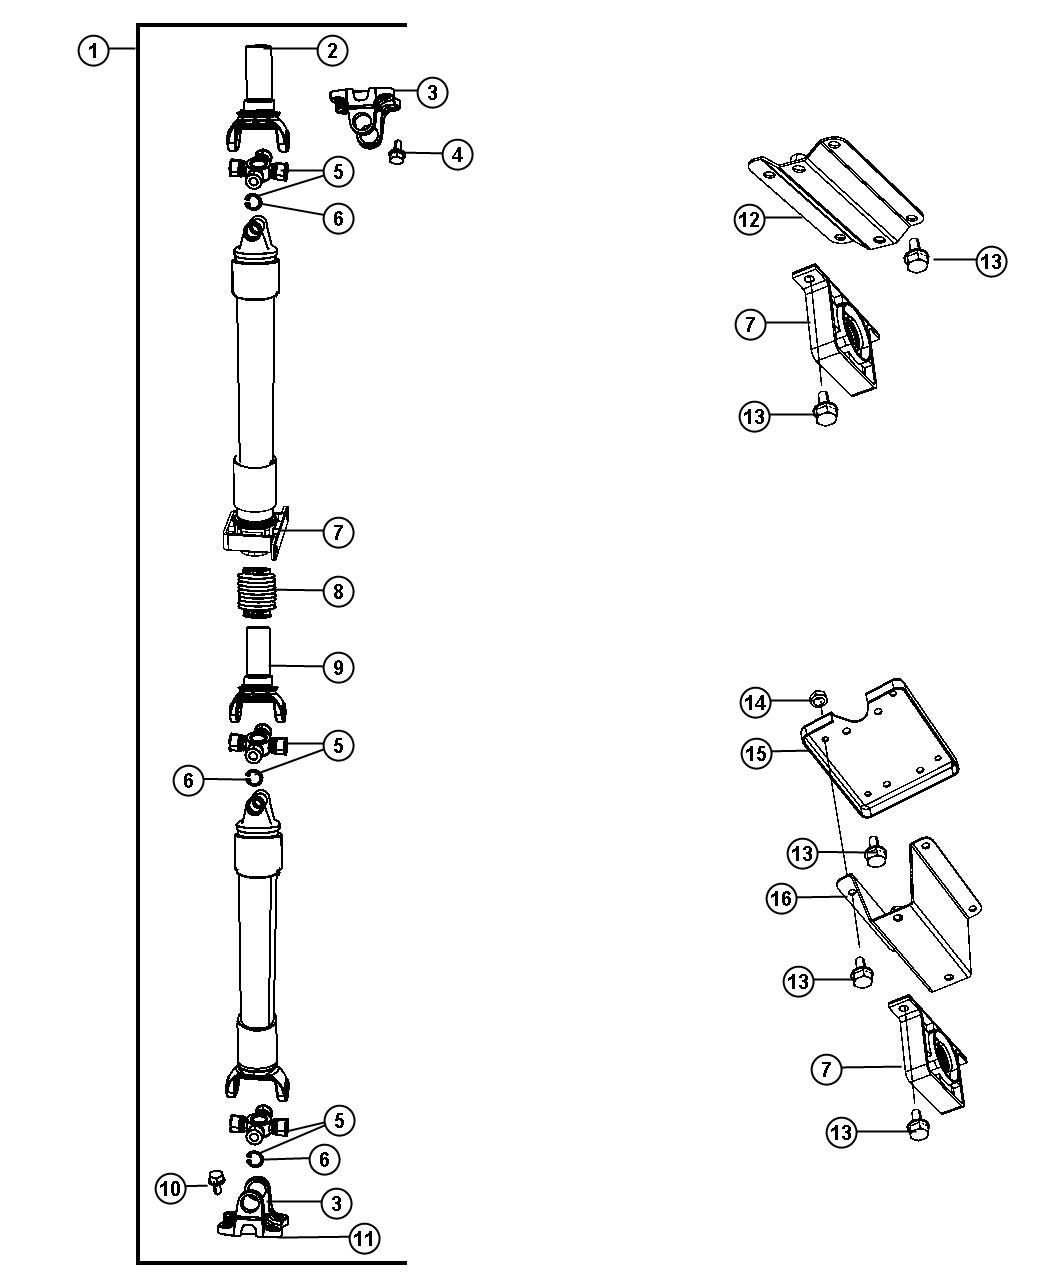 G56 Manual Transmission Diagram. 2008 dodge ram 3500 shaft